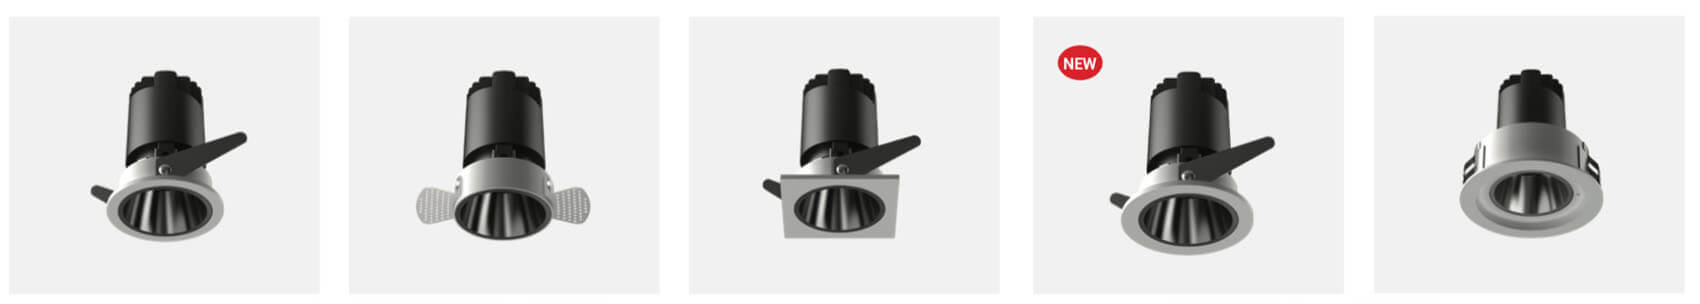 6w led spotlight recessed - Led Spotlight Recessed with 6 colors reflector